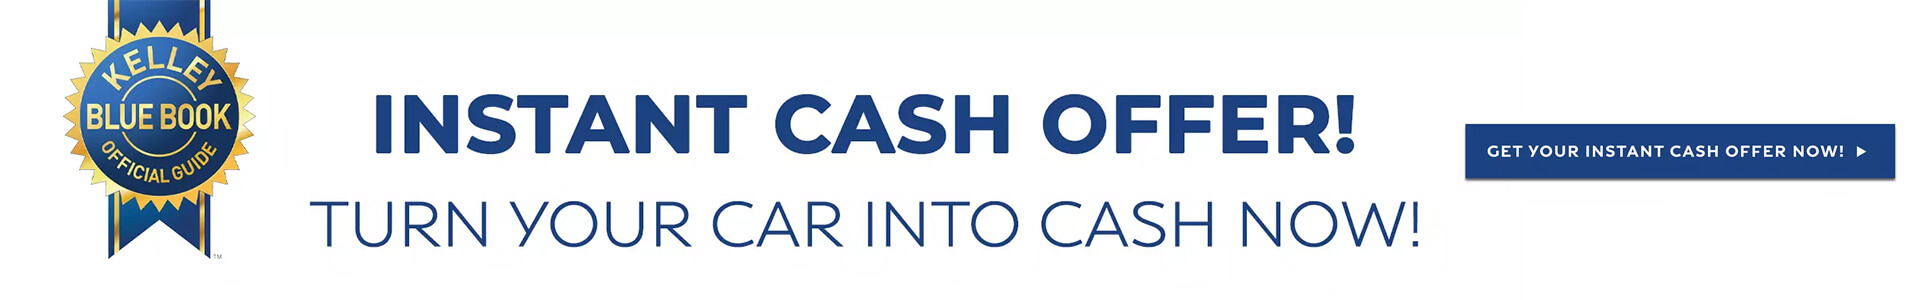 Instant Cash Offer! Turn Your Car into Cash Now!